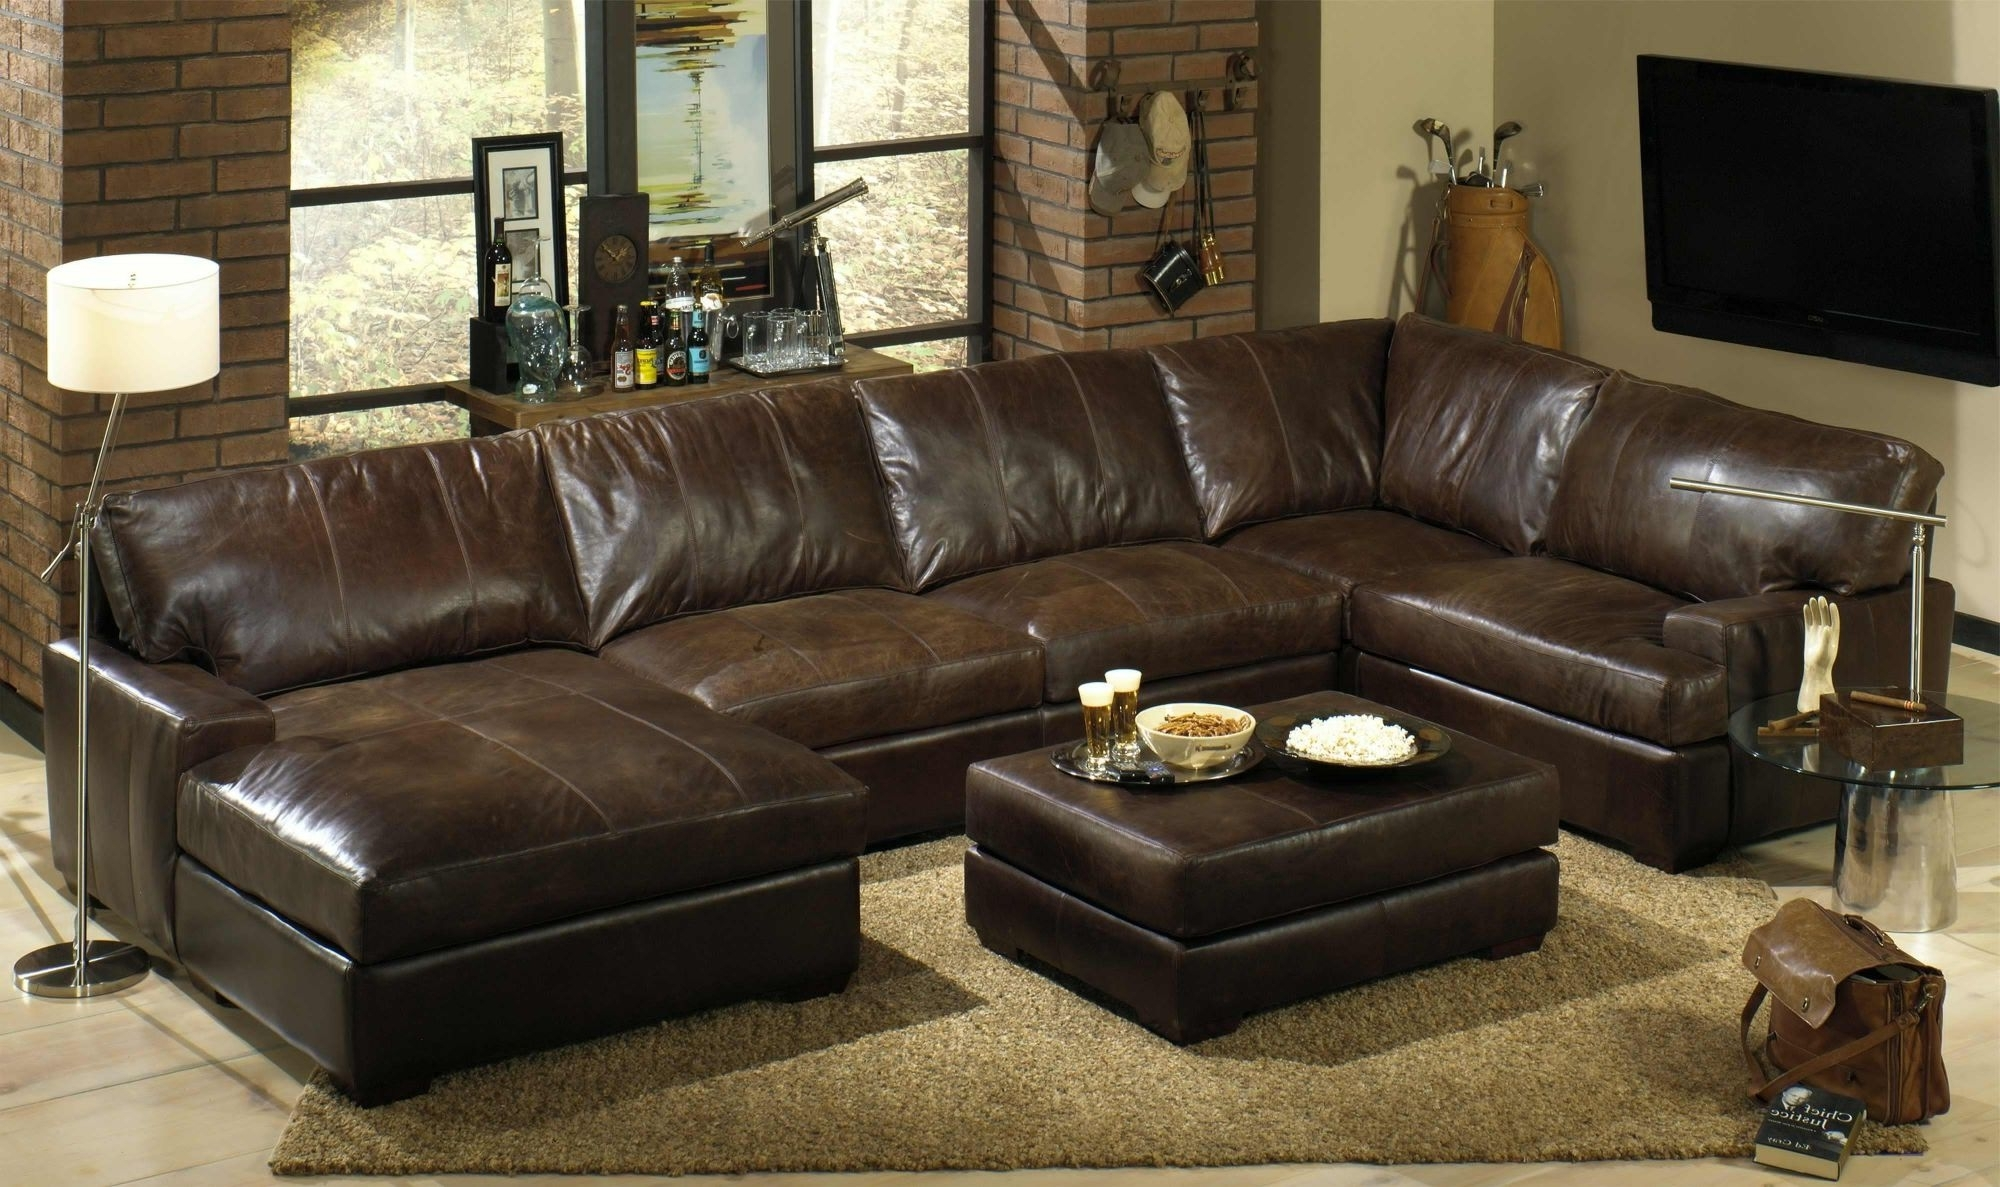 Amazing Sectional Sofa Design Small Leather Chaise Pict Of With For Most Up To Date Sectional Sofas With Recliners For Small Spaces (View 6 of 15)